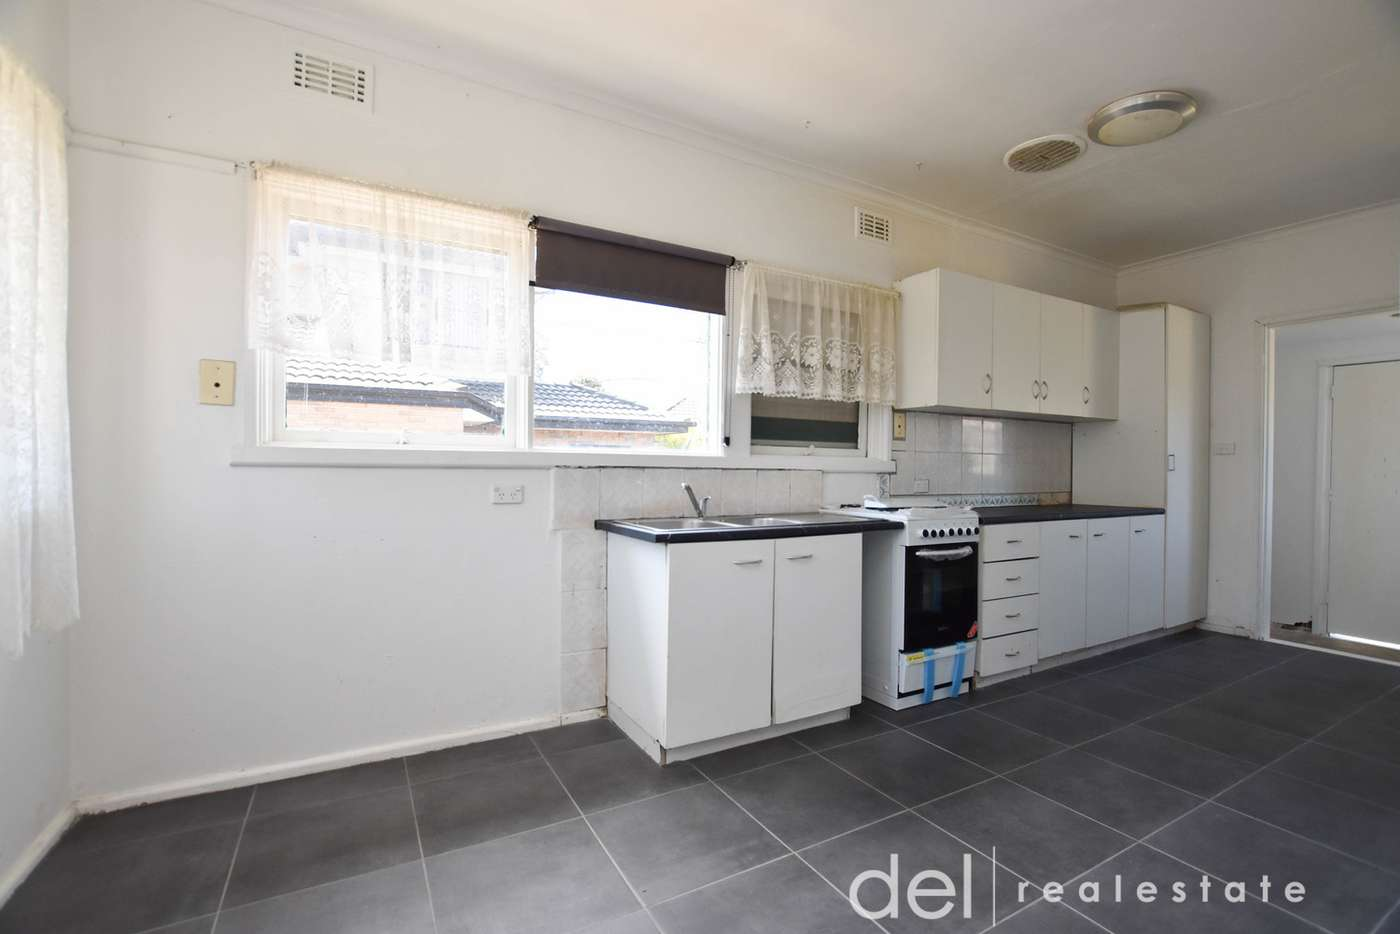 Sixth view of Homely house listing, 3 Gardiner Avenue, Dandenong North VIC 3175